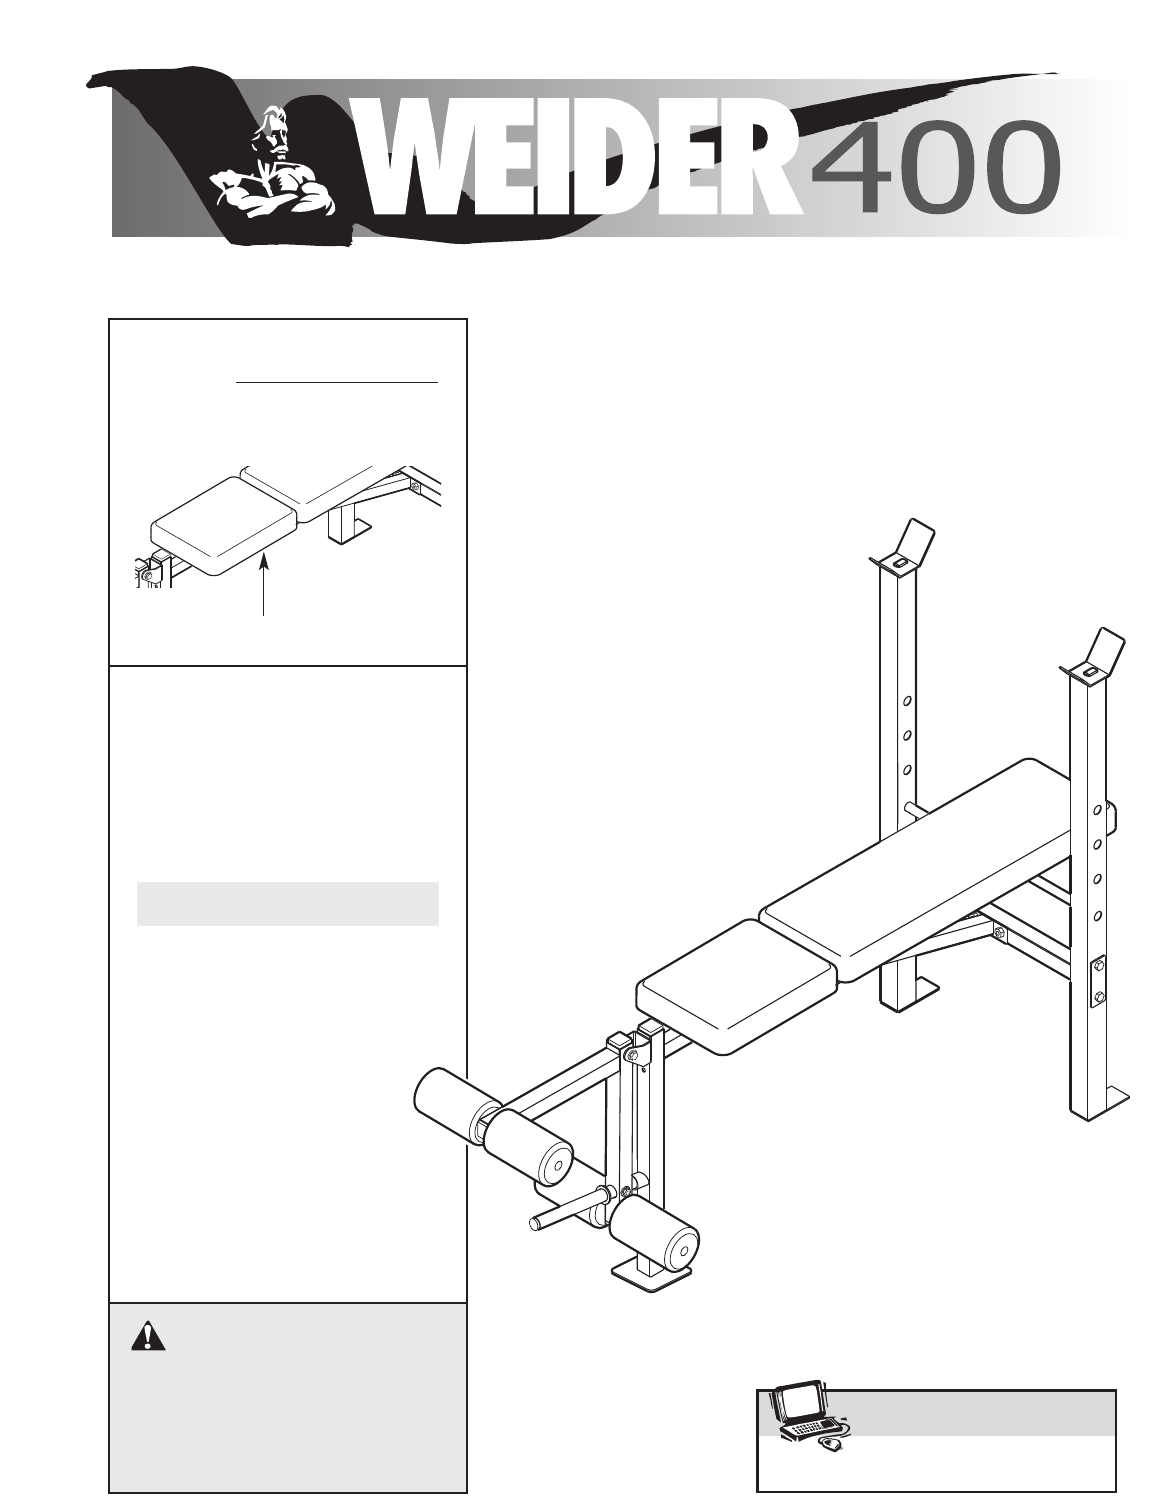 Weider home gym weccbe user guide manualsonline